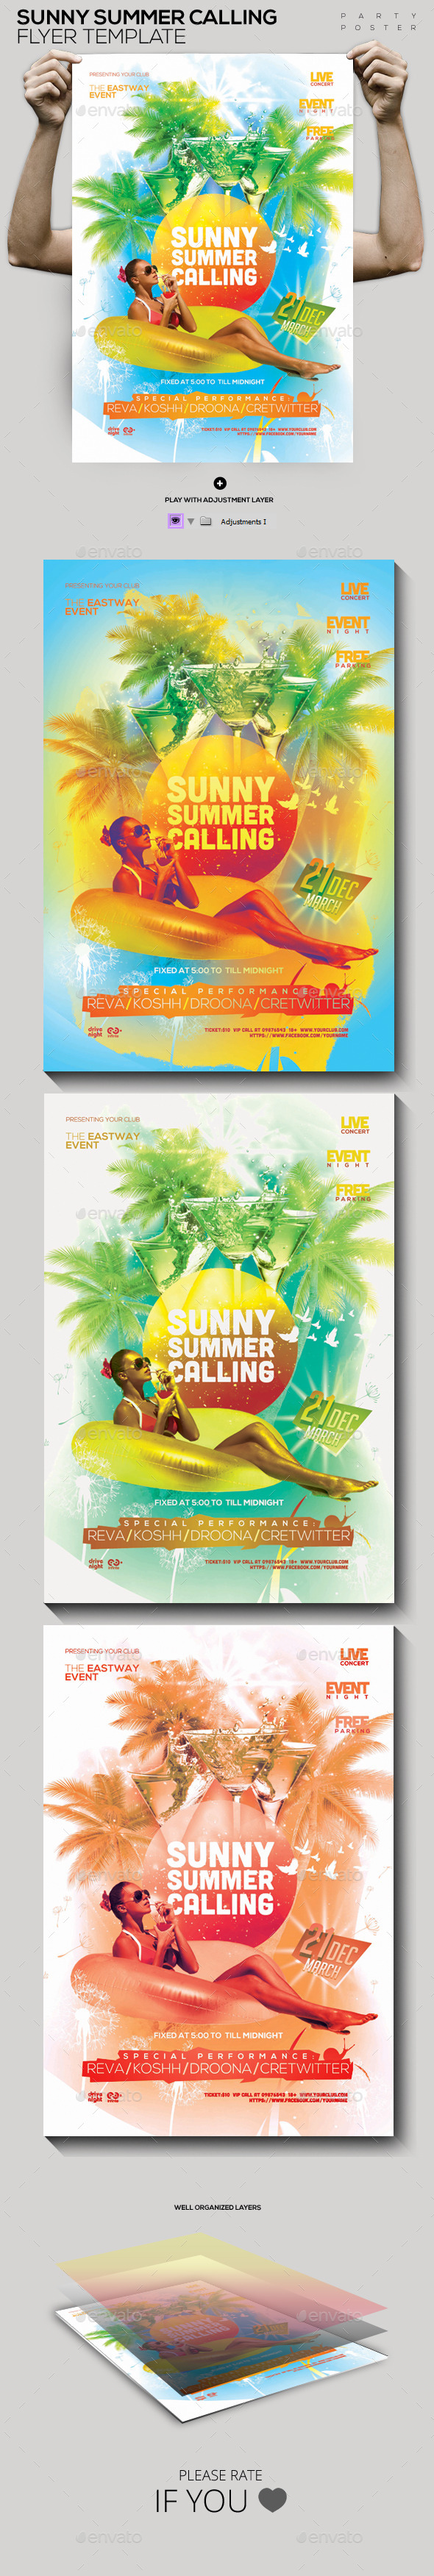 GraphicRiver Sunny Summer Calling Template PSD Flyer Poster 10702756